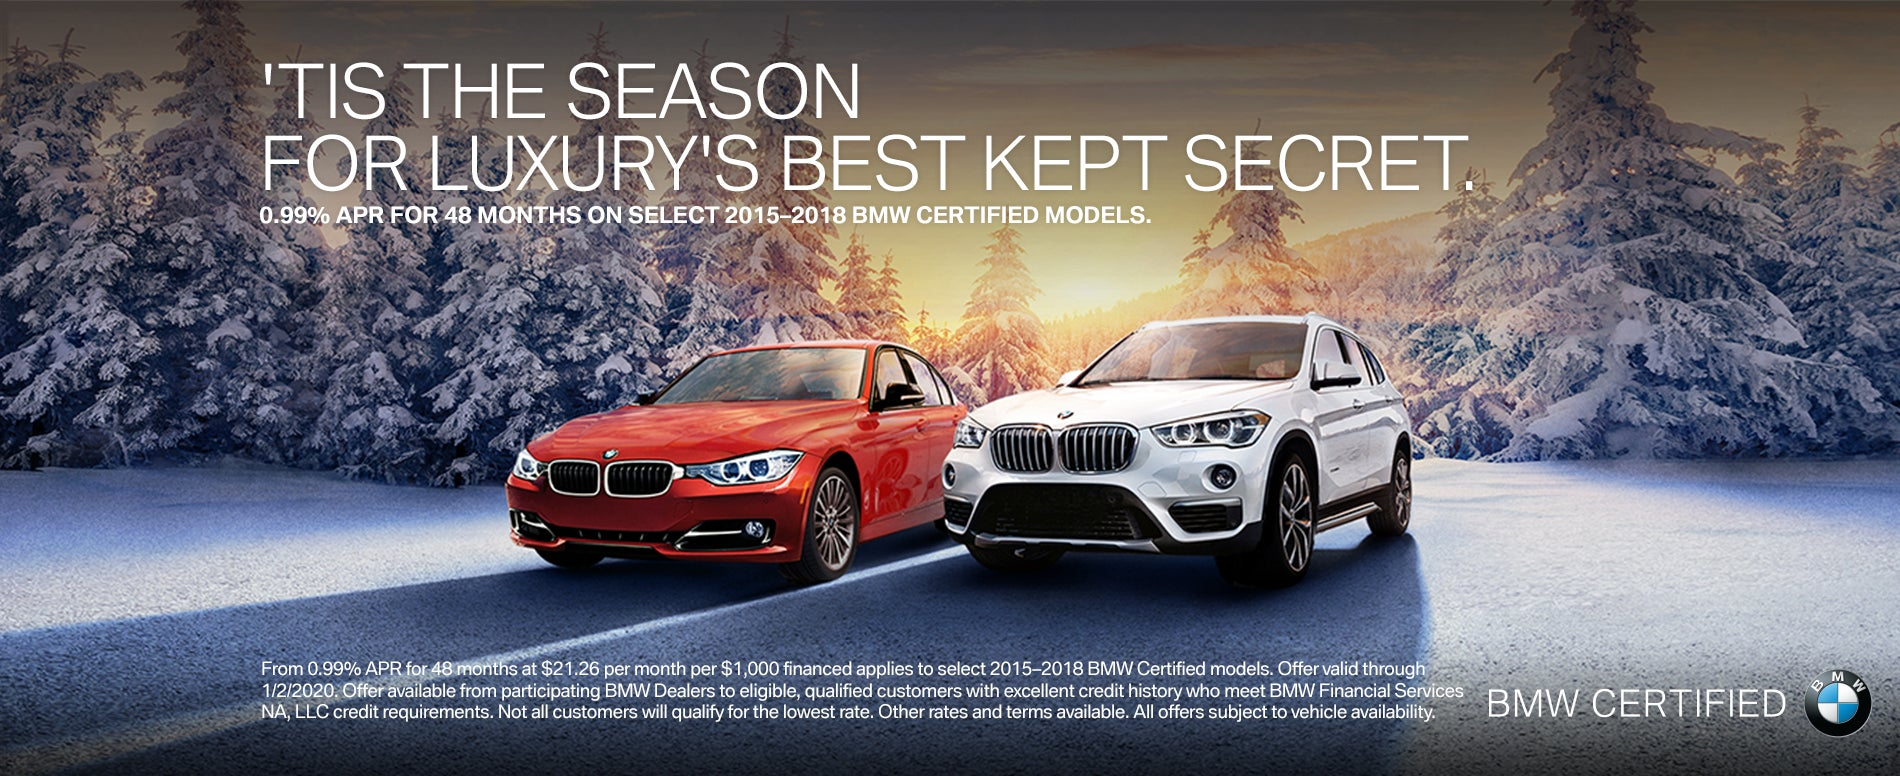 Get 0 99 Apr For 48 Months On Bmw Certified Models At Passport Bmw Marlow Heights Bmw Dealer